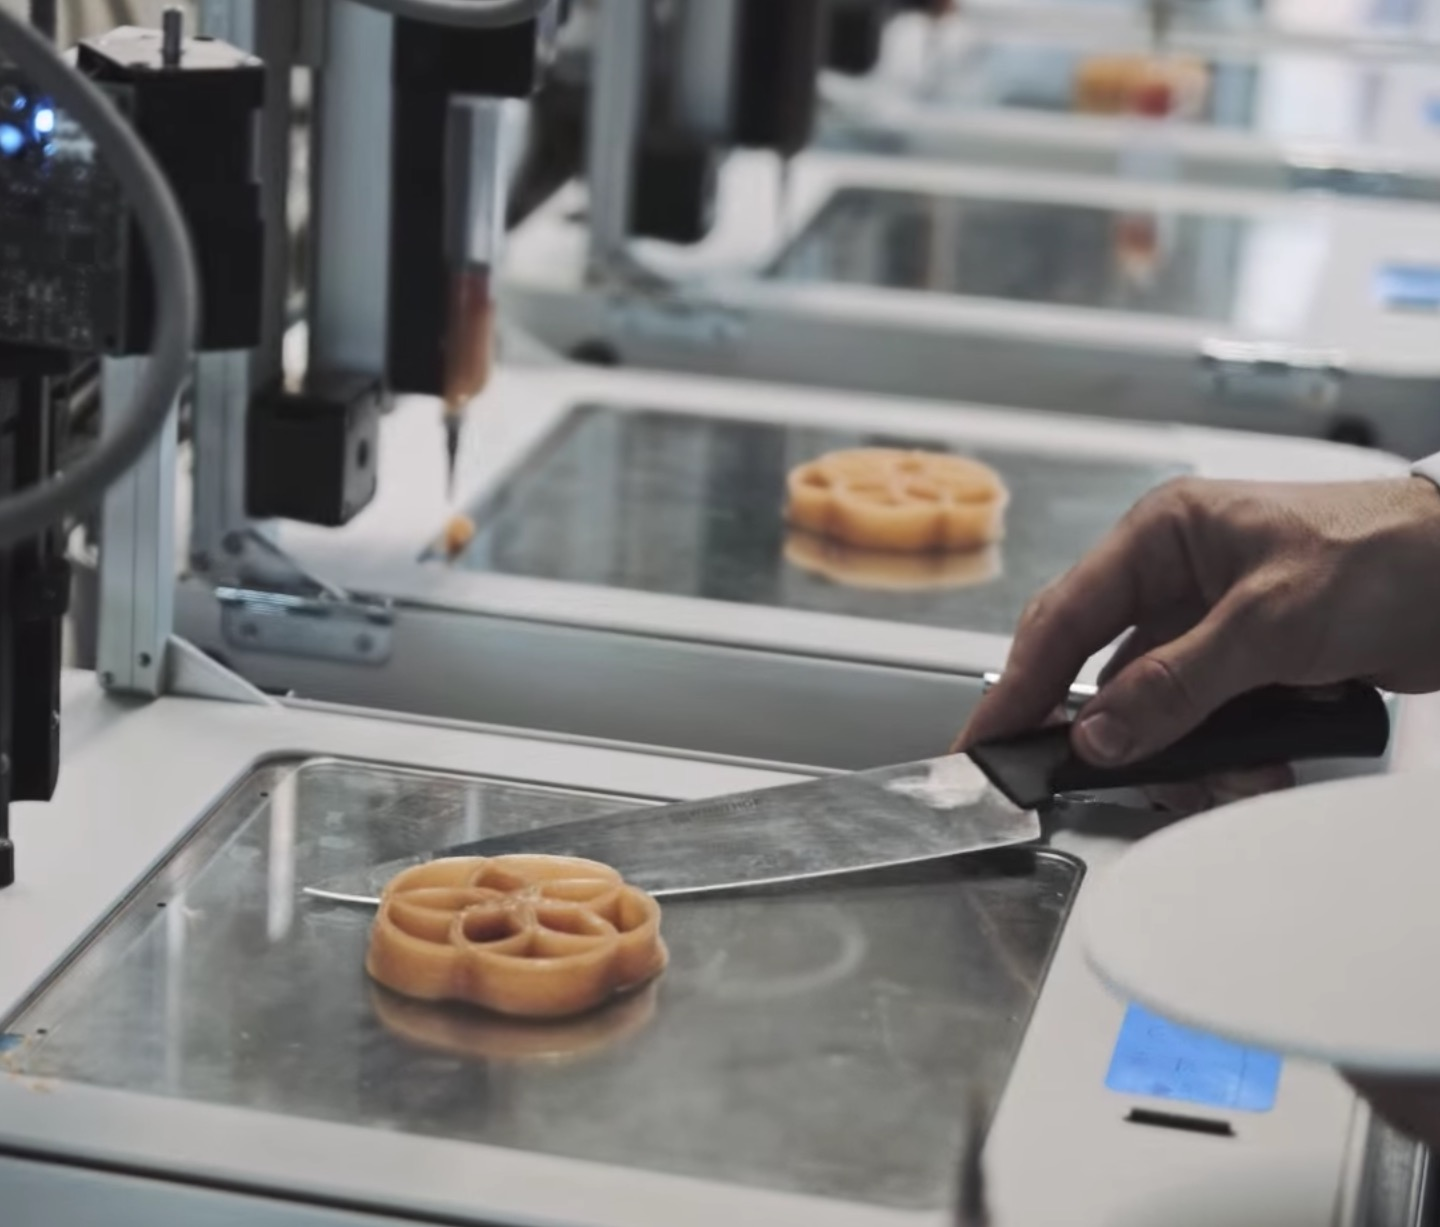 Removing a 3D printed food item from the machine